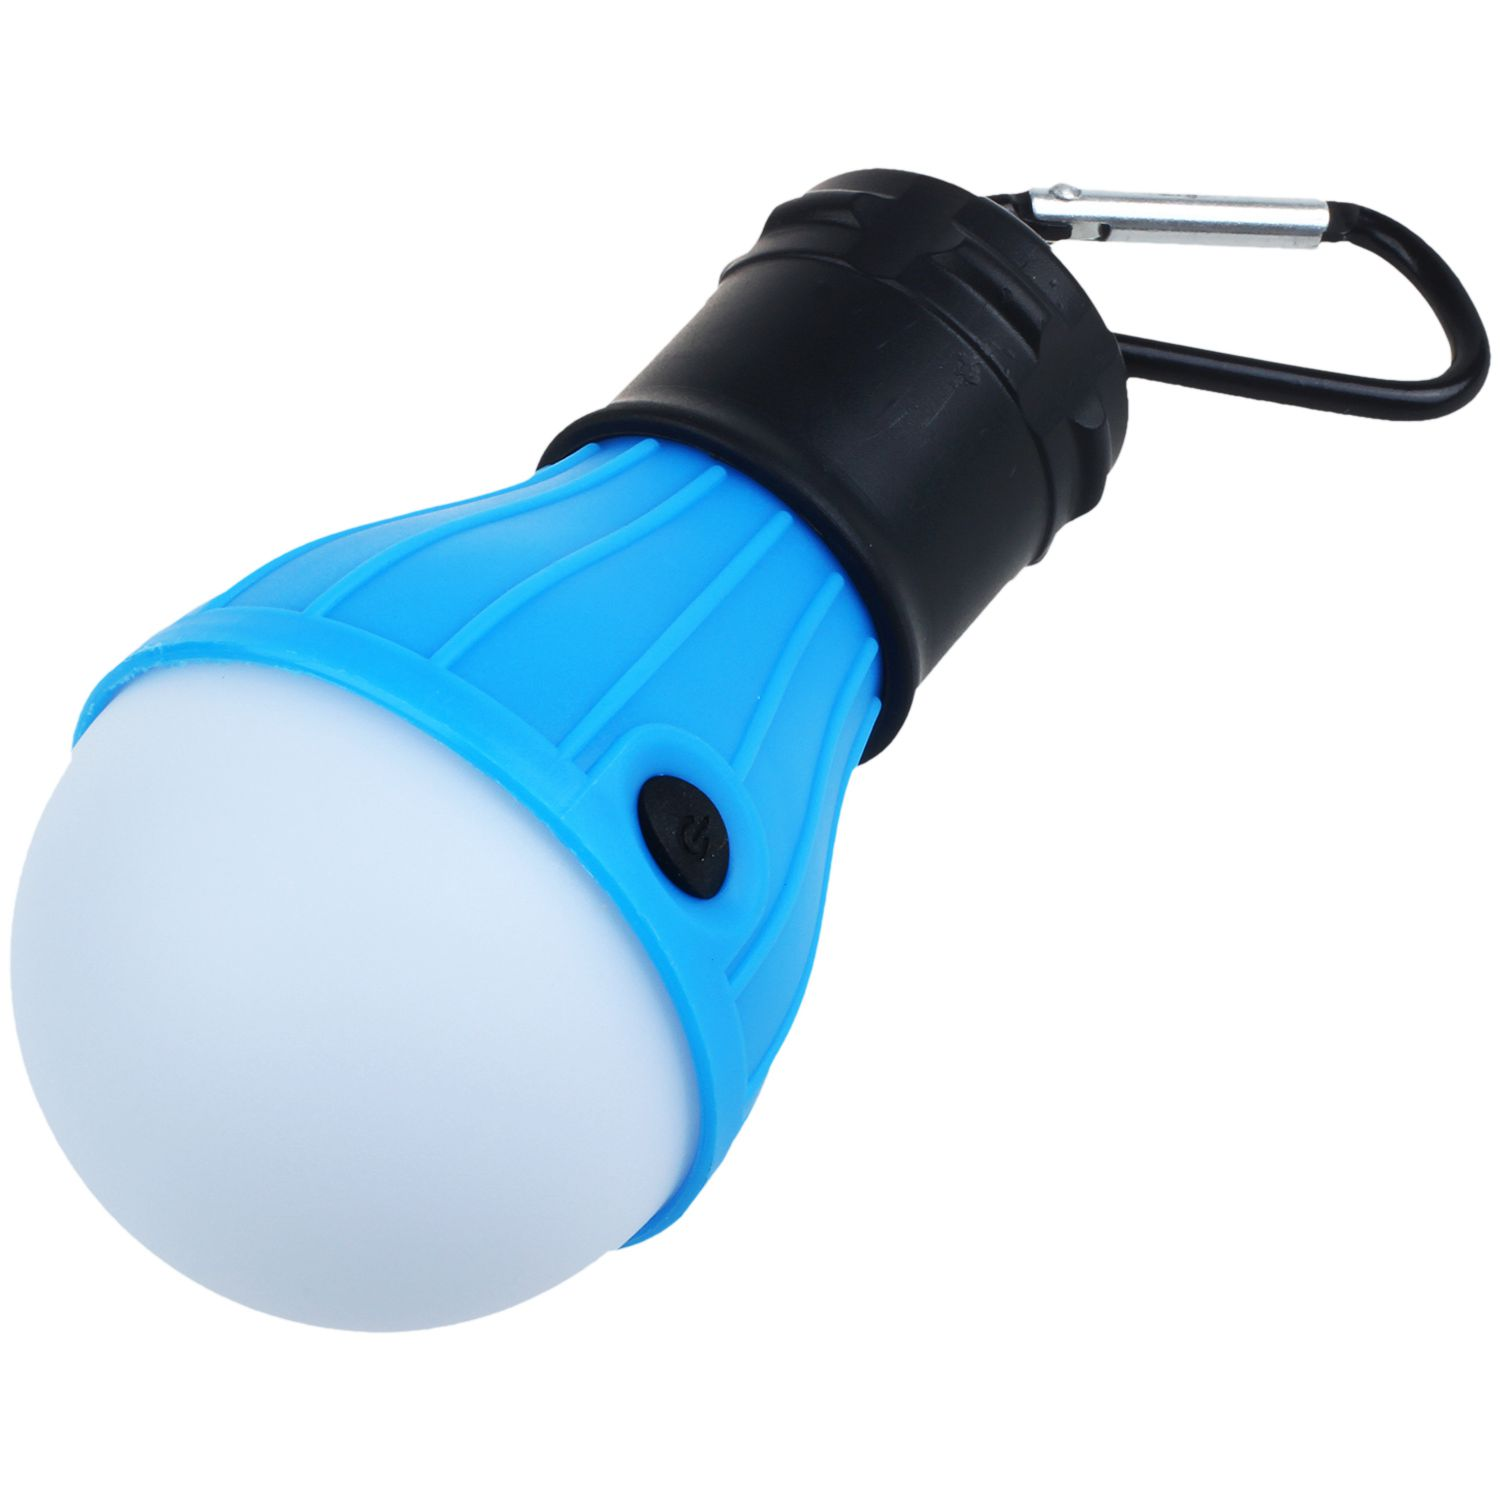 DYH-Portable LED Lanterns Camping Mountaineering bulbs Camping Hiking Fishing Emergency lights Battery-powered camping gear Ge